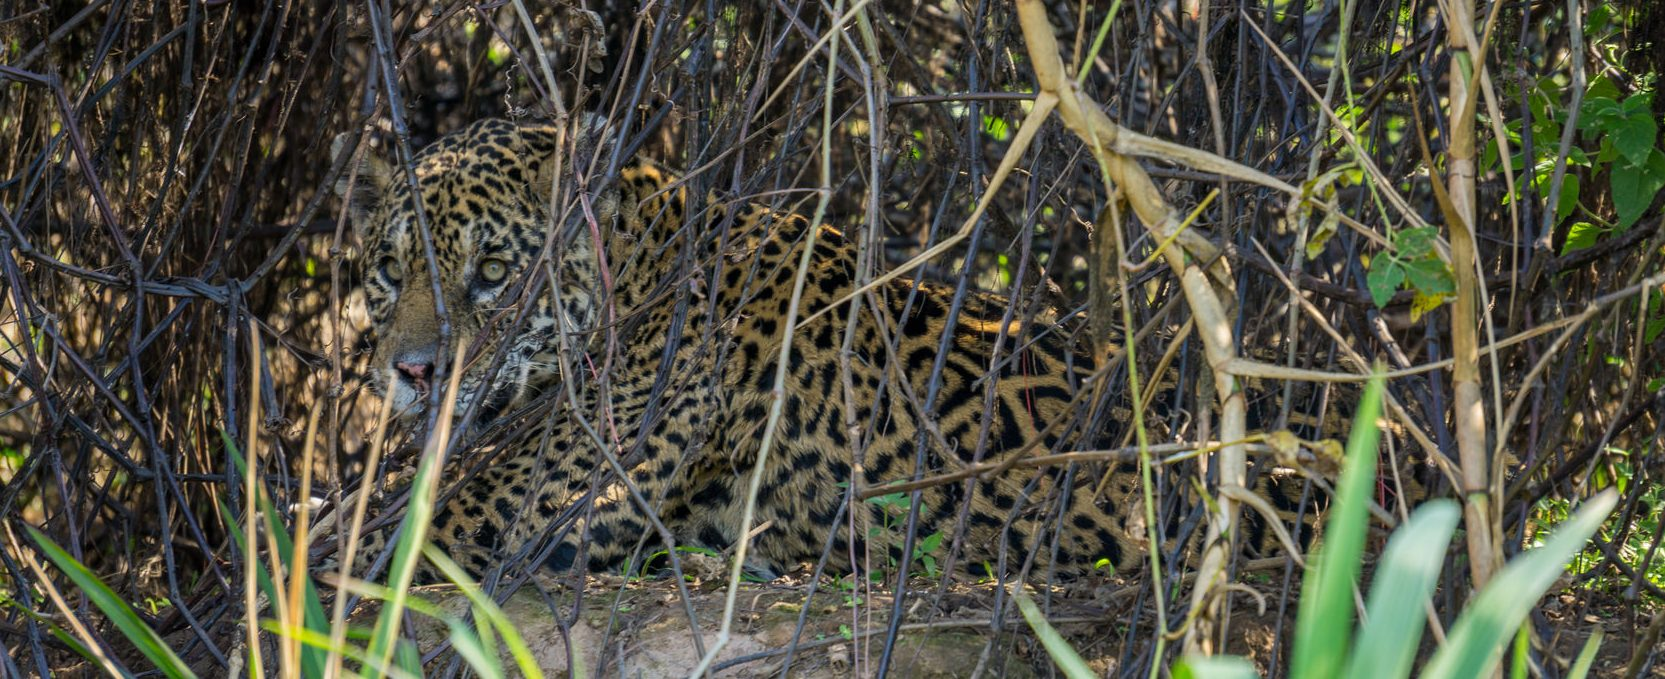 A very well camouflaged jaguar, hard to spot.